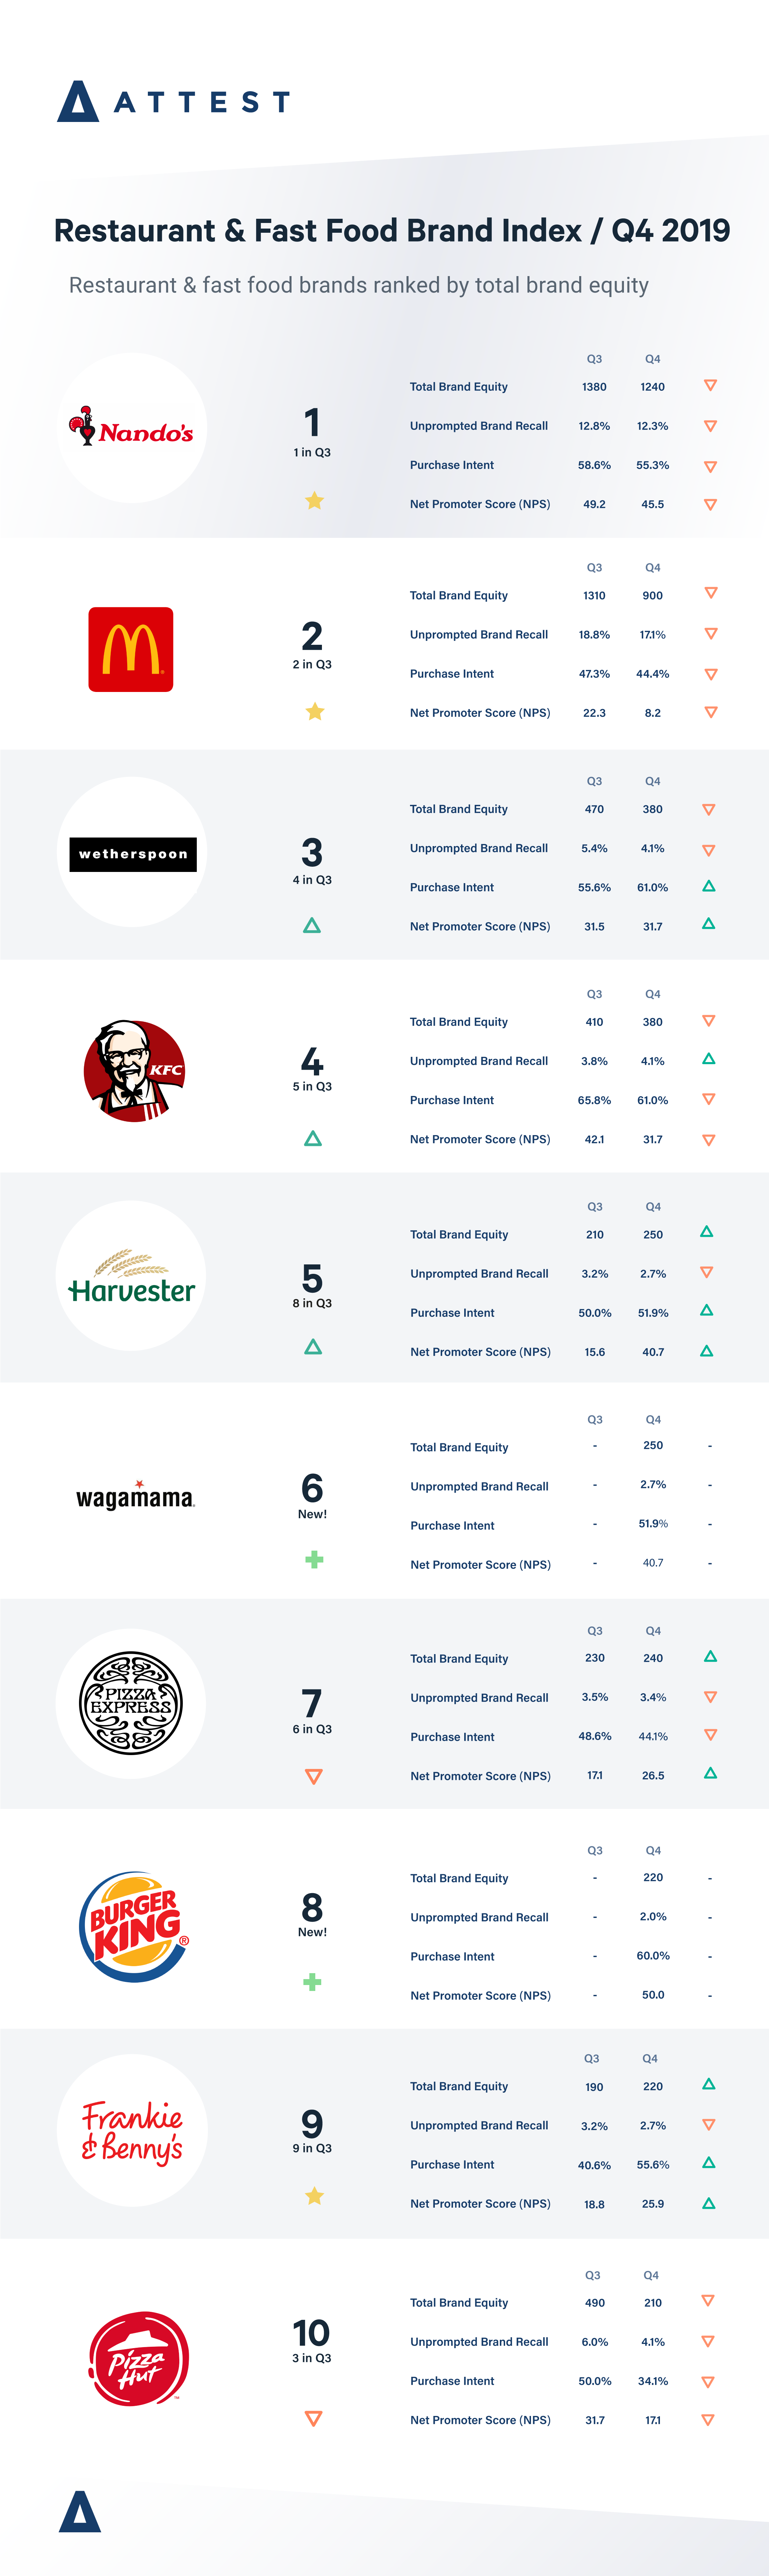 Restaurant and fast food brand index Q4 2019